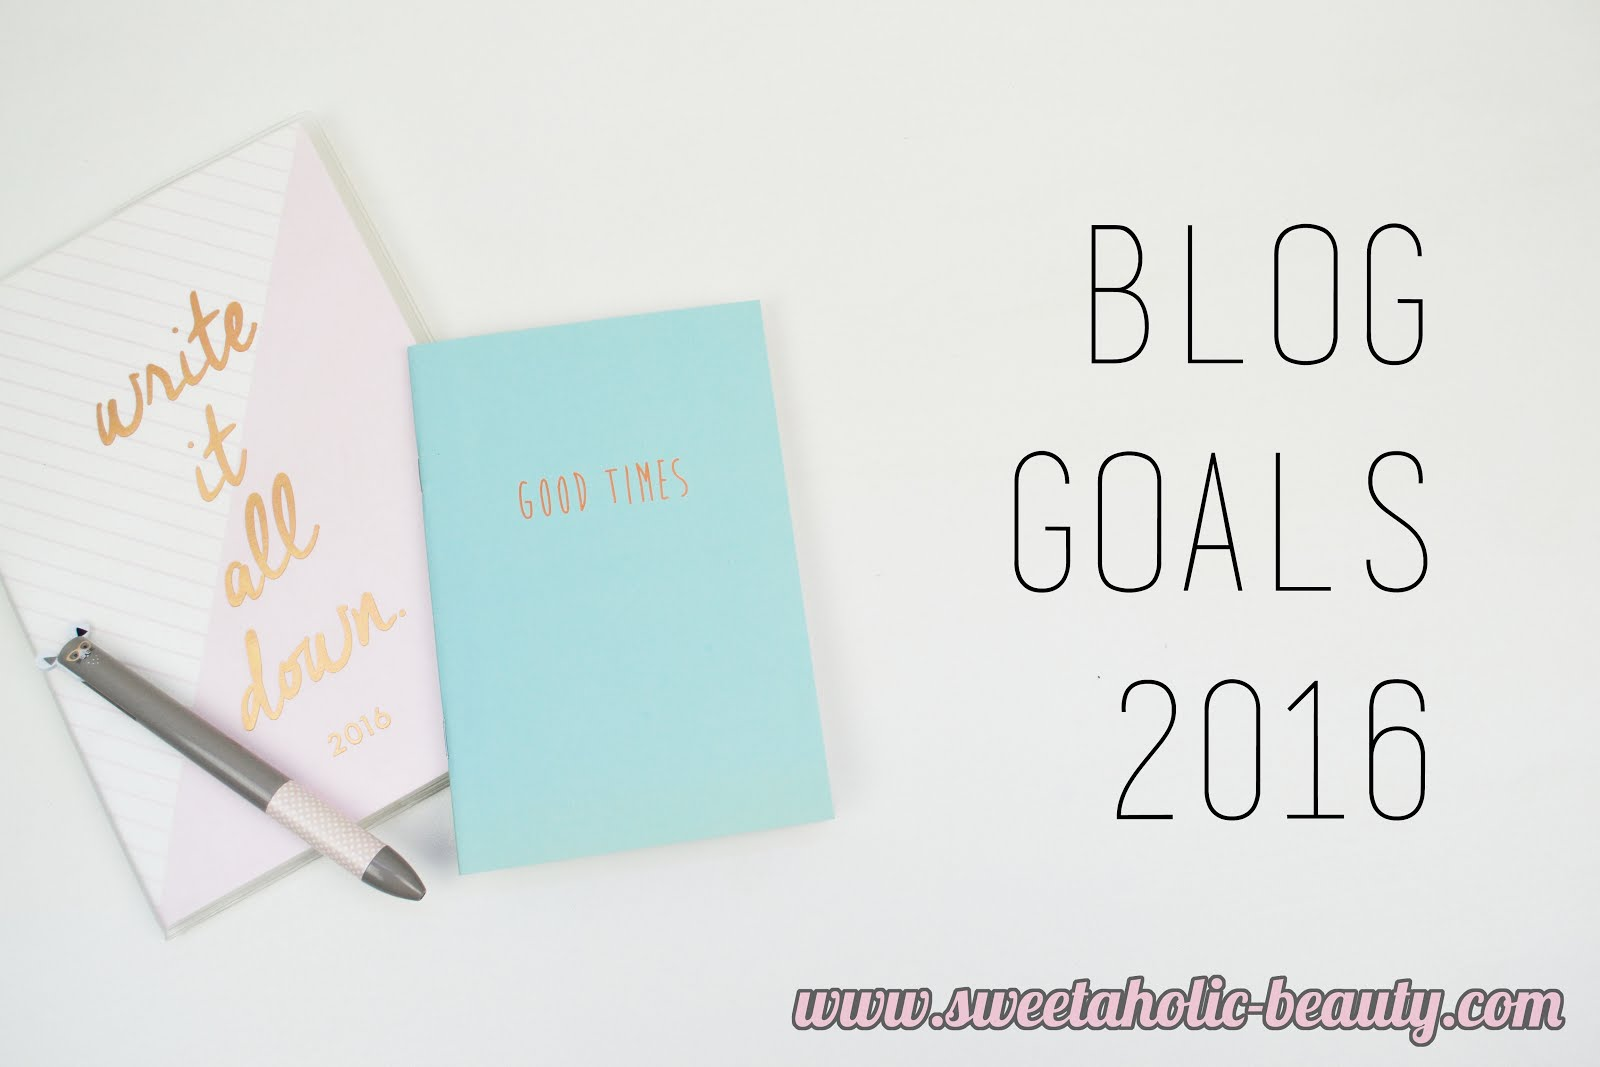 Blog Goals of 2016 - Sweetaholic Beauty